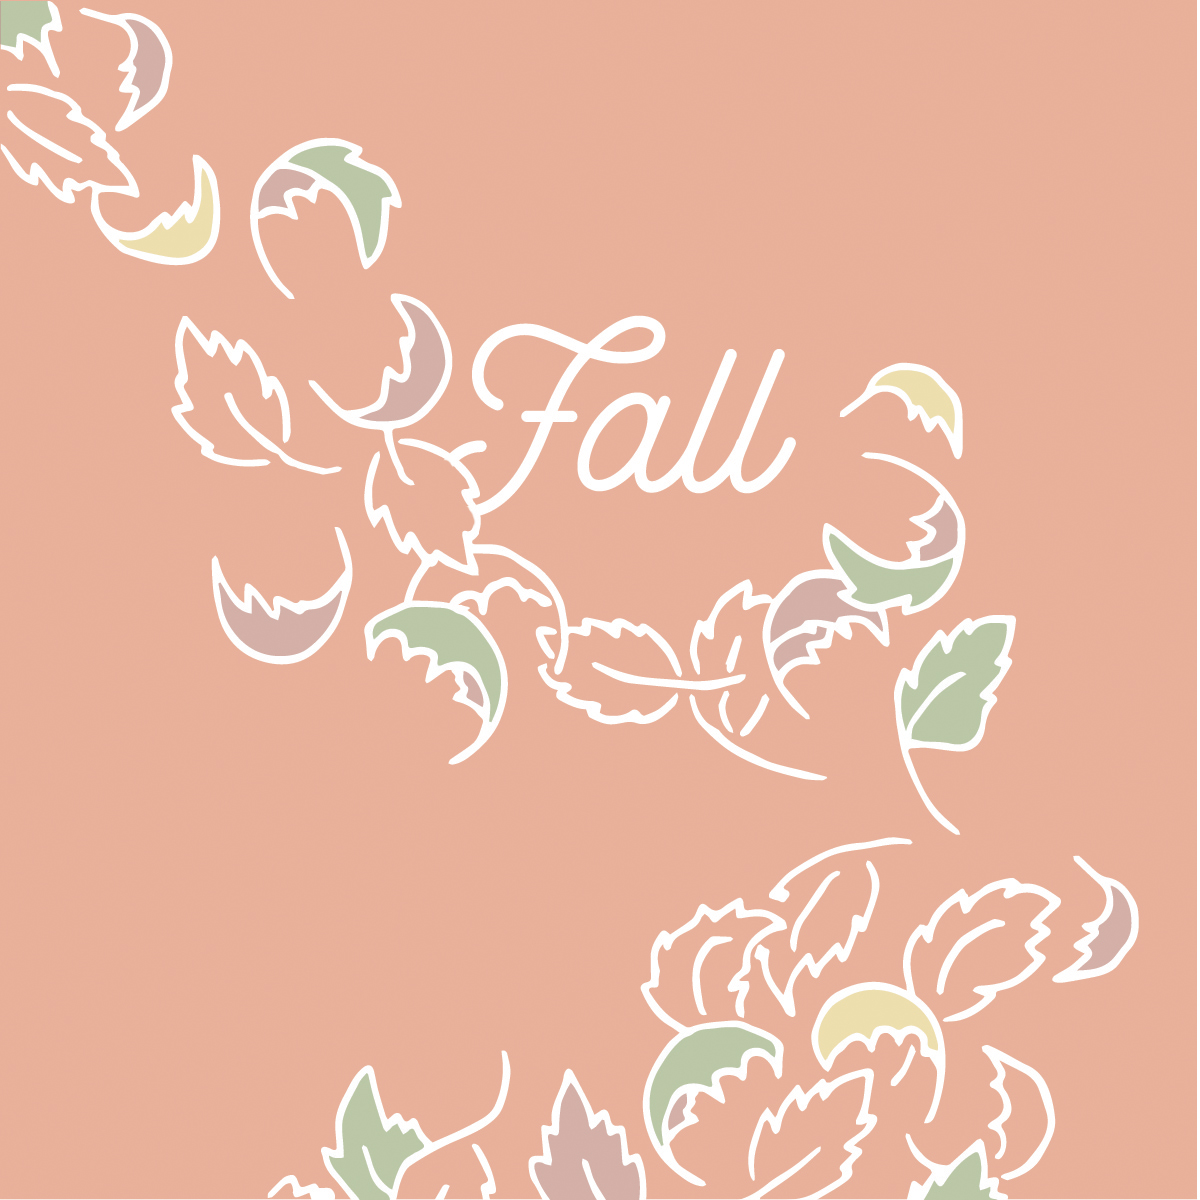 2017 Autumn Playlist-03.jpg